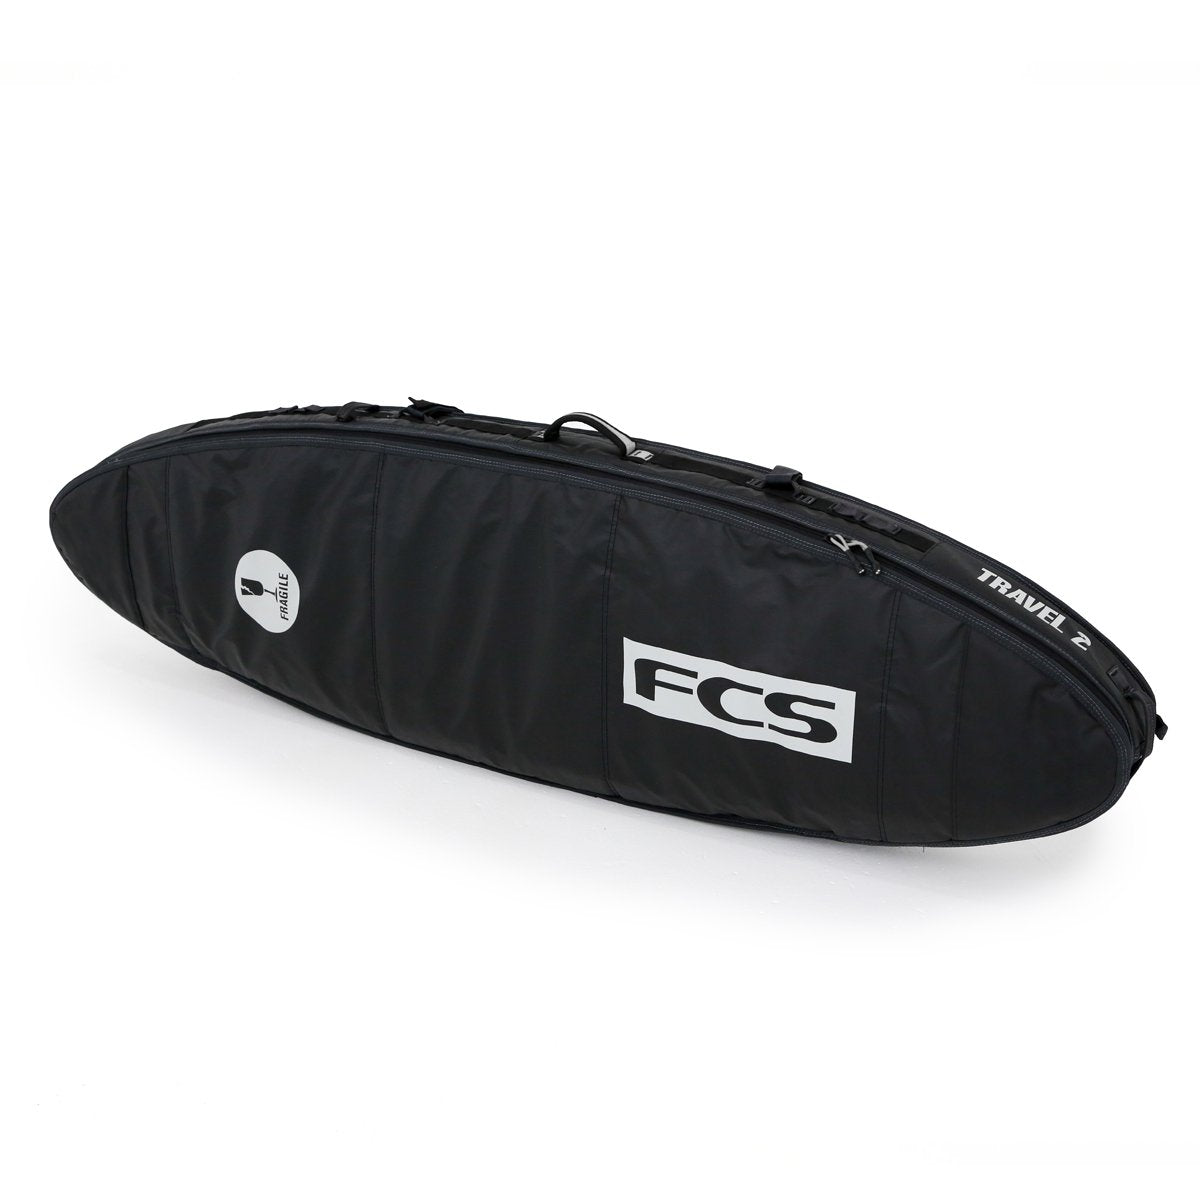 FCS Travel 2 Fun Board Surfboard Bag